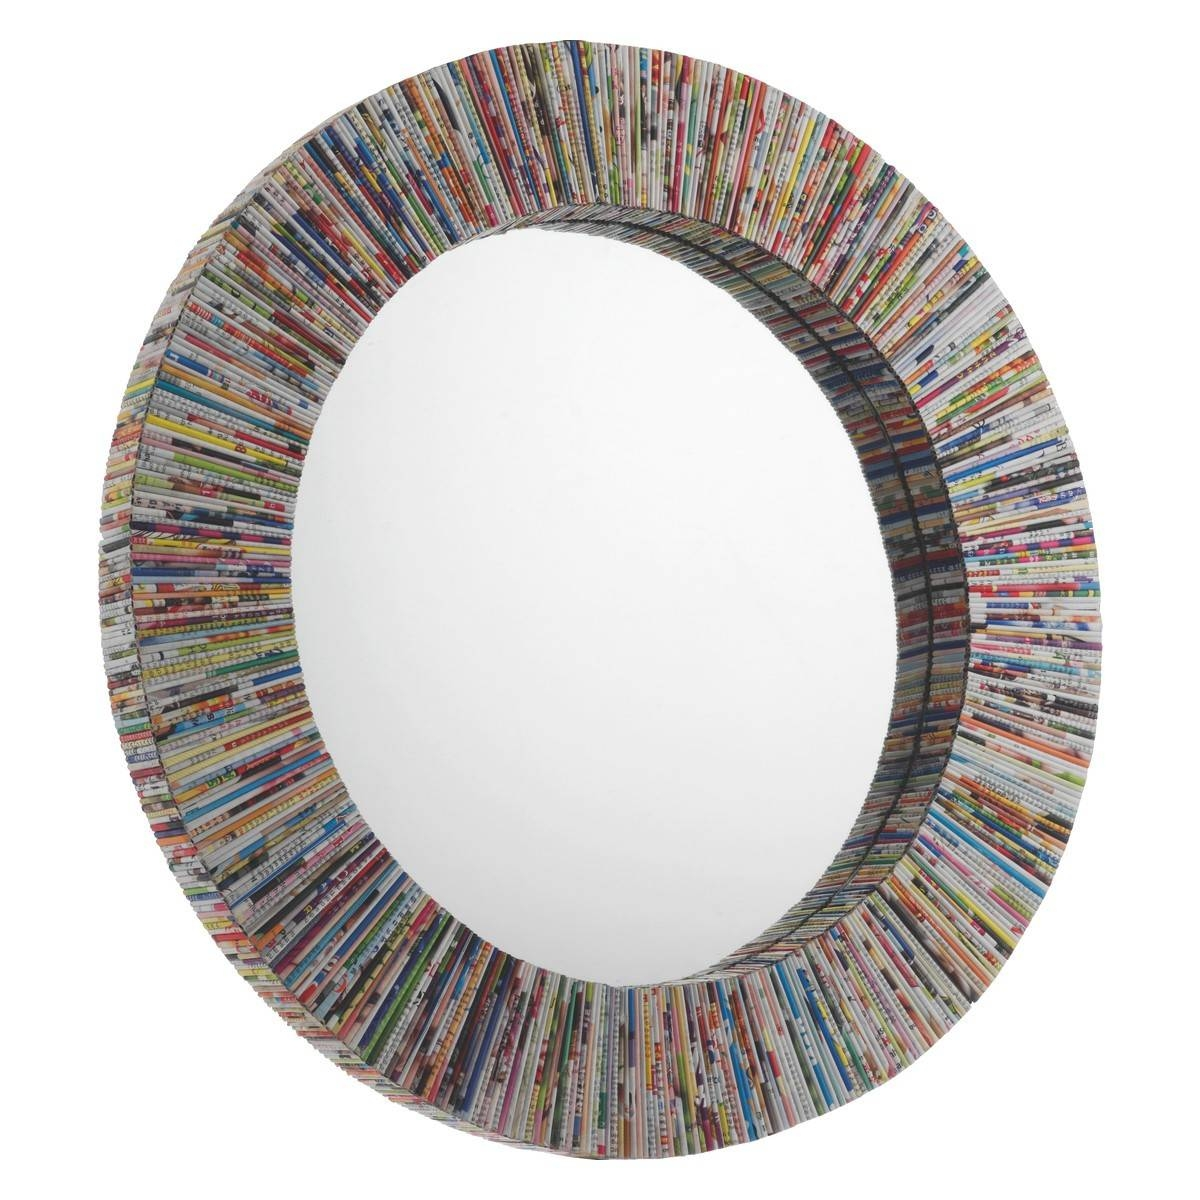 Cohen Multi-Coloured Recycled Magazine Round Wall Mirror | Buy Now throughout Funky Wall Mirrors (Image 4 of 15)